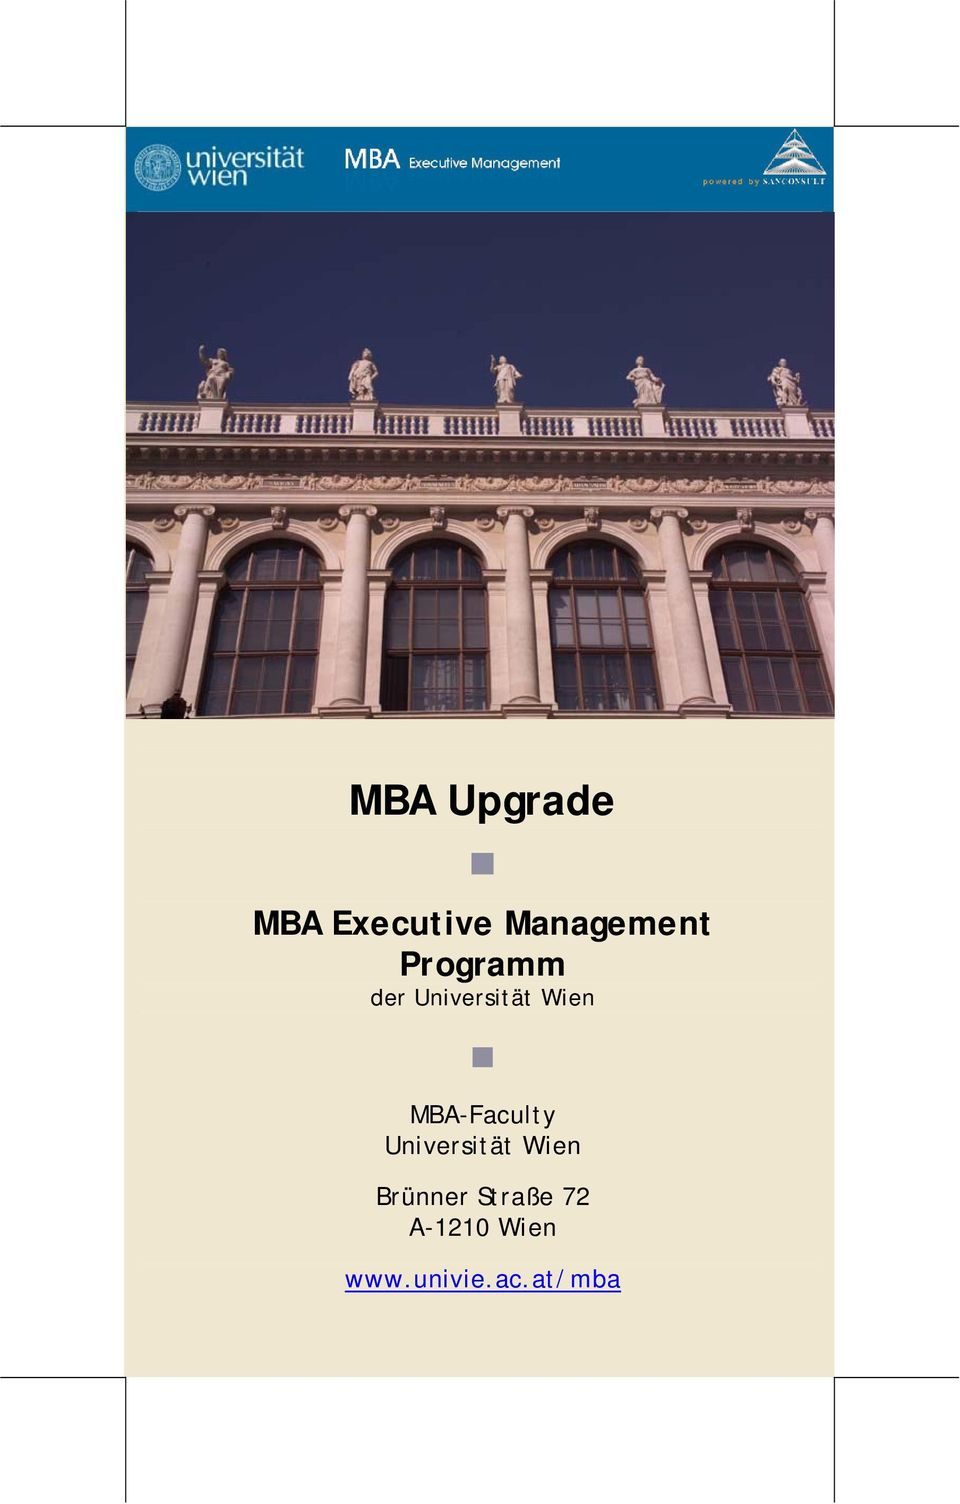 MBA-Faculty Universität Wien Brünner